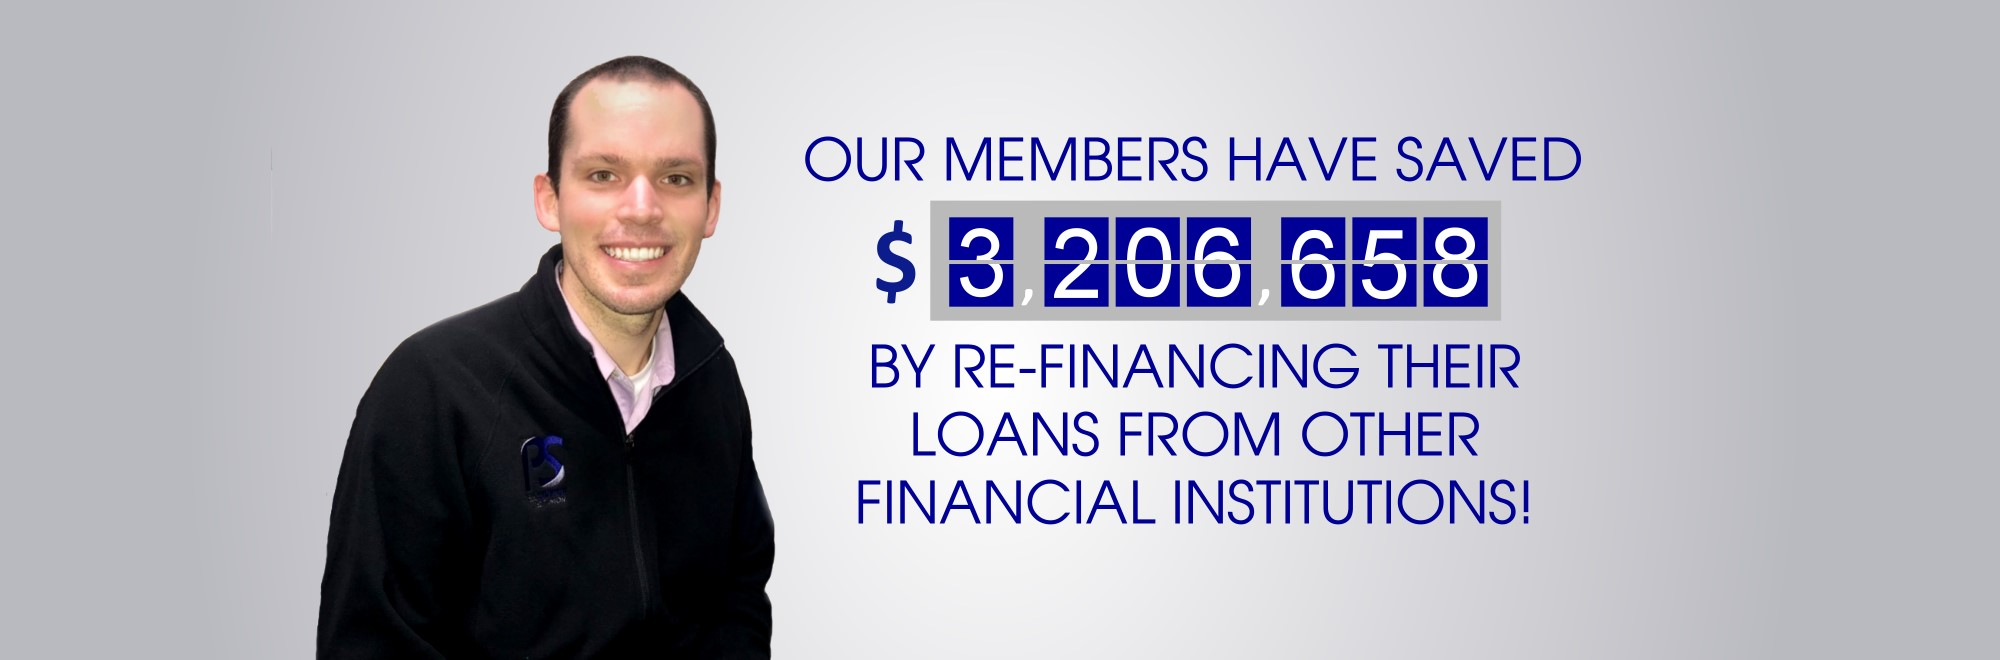 Our members have saved over $3,004,615 by re-financing their debt from other financial institutions